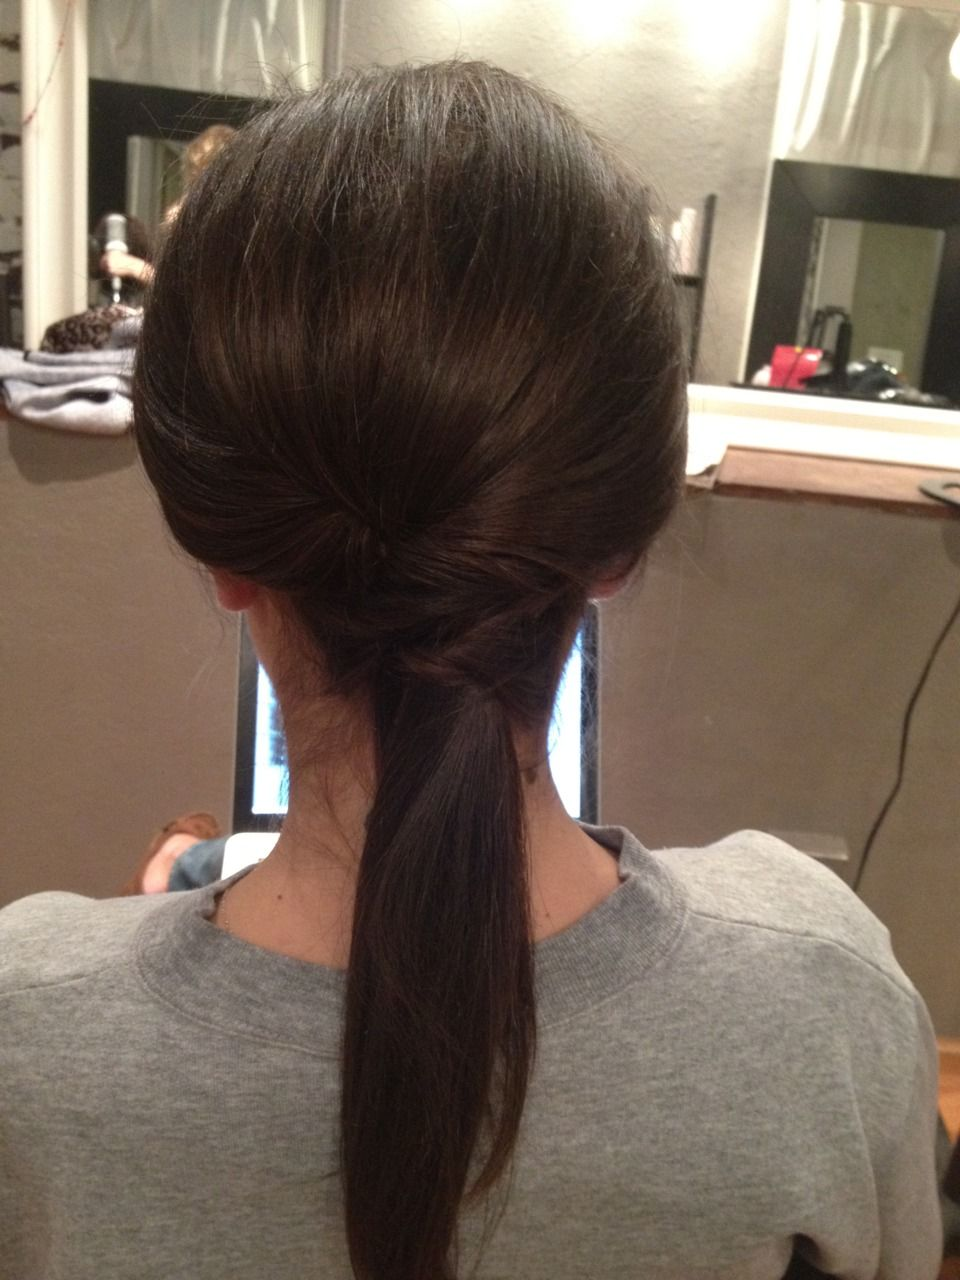 One of our very own sleek ponytails!